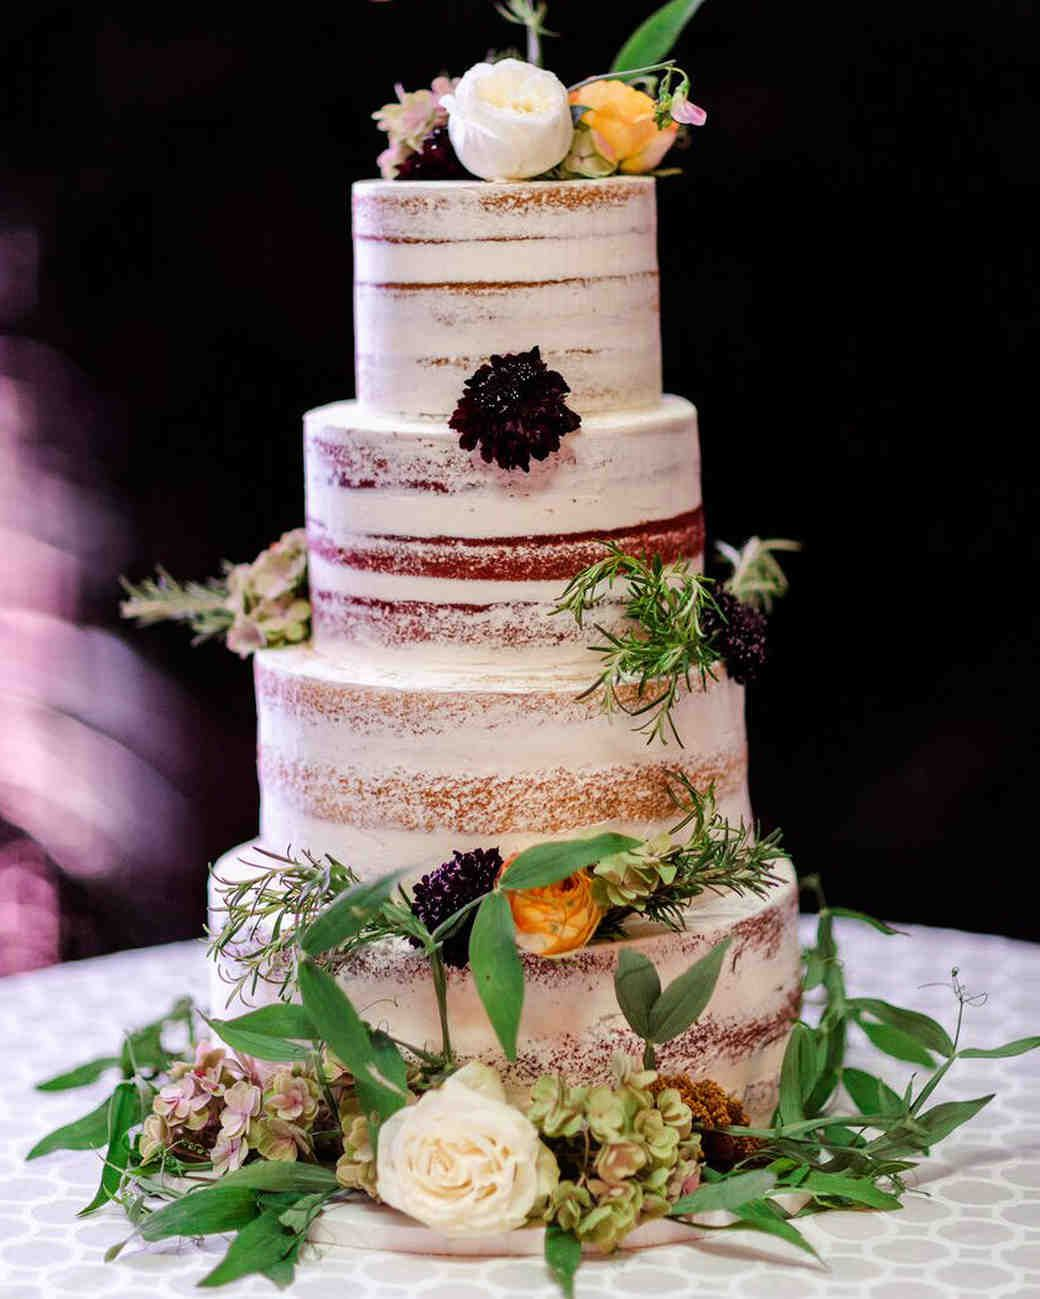 53 Fall Wedding Cakes We Re Obsessed With: 60 Fall Wedding Cakes We're Obsessed With